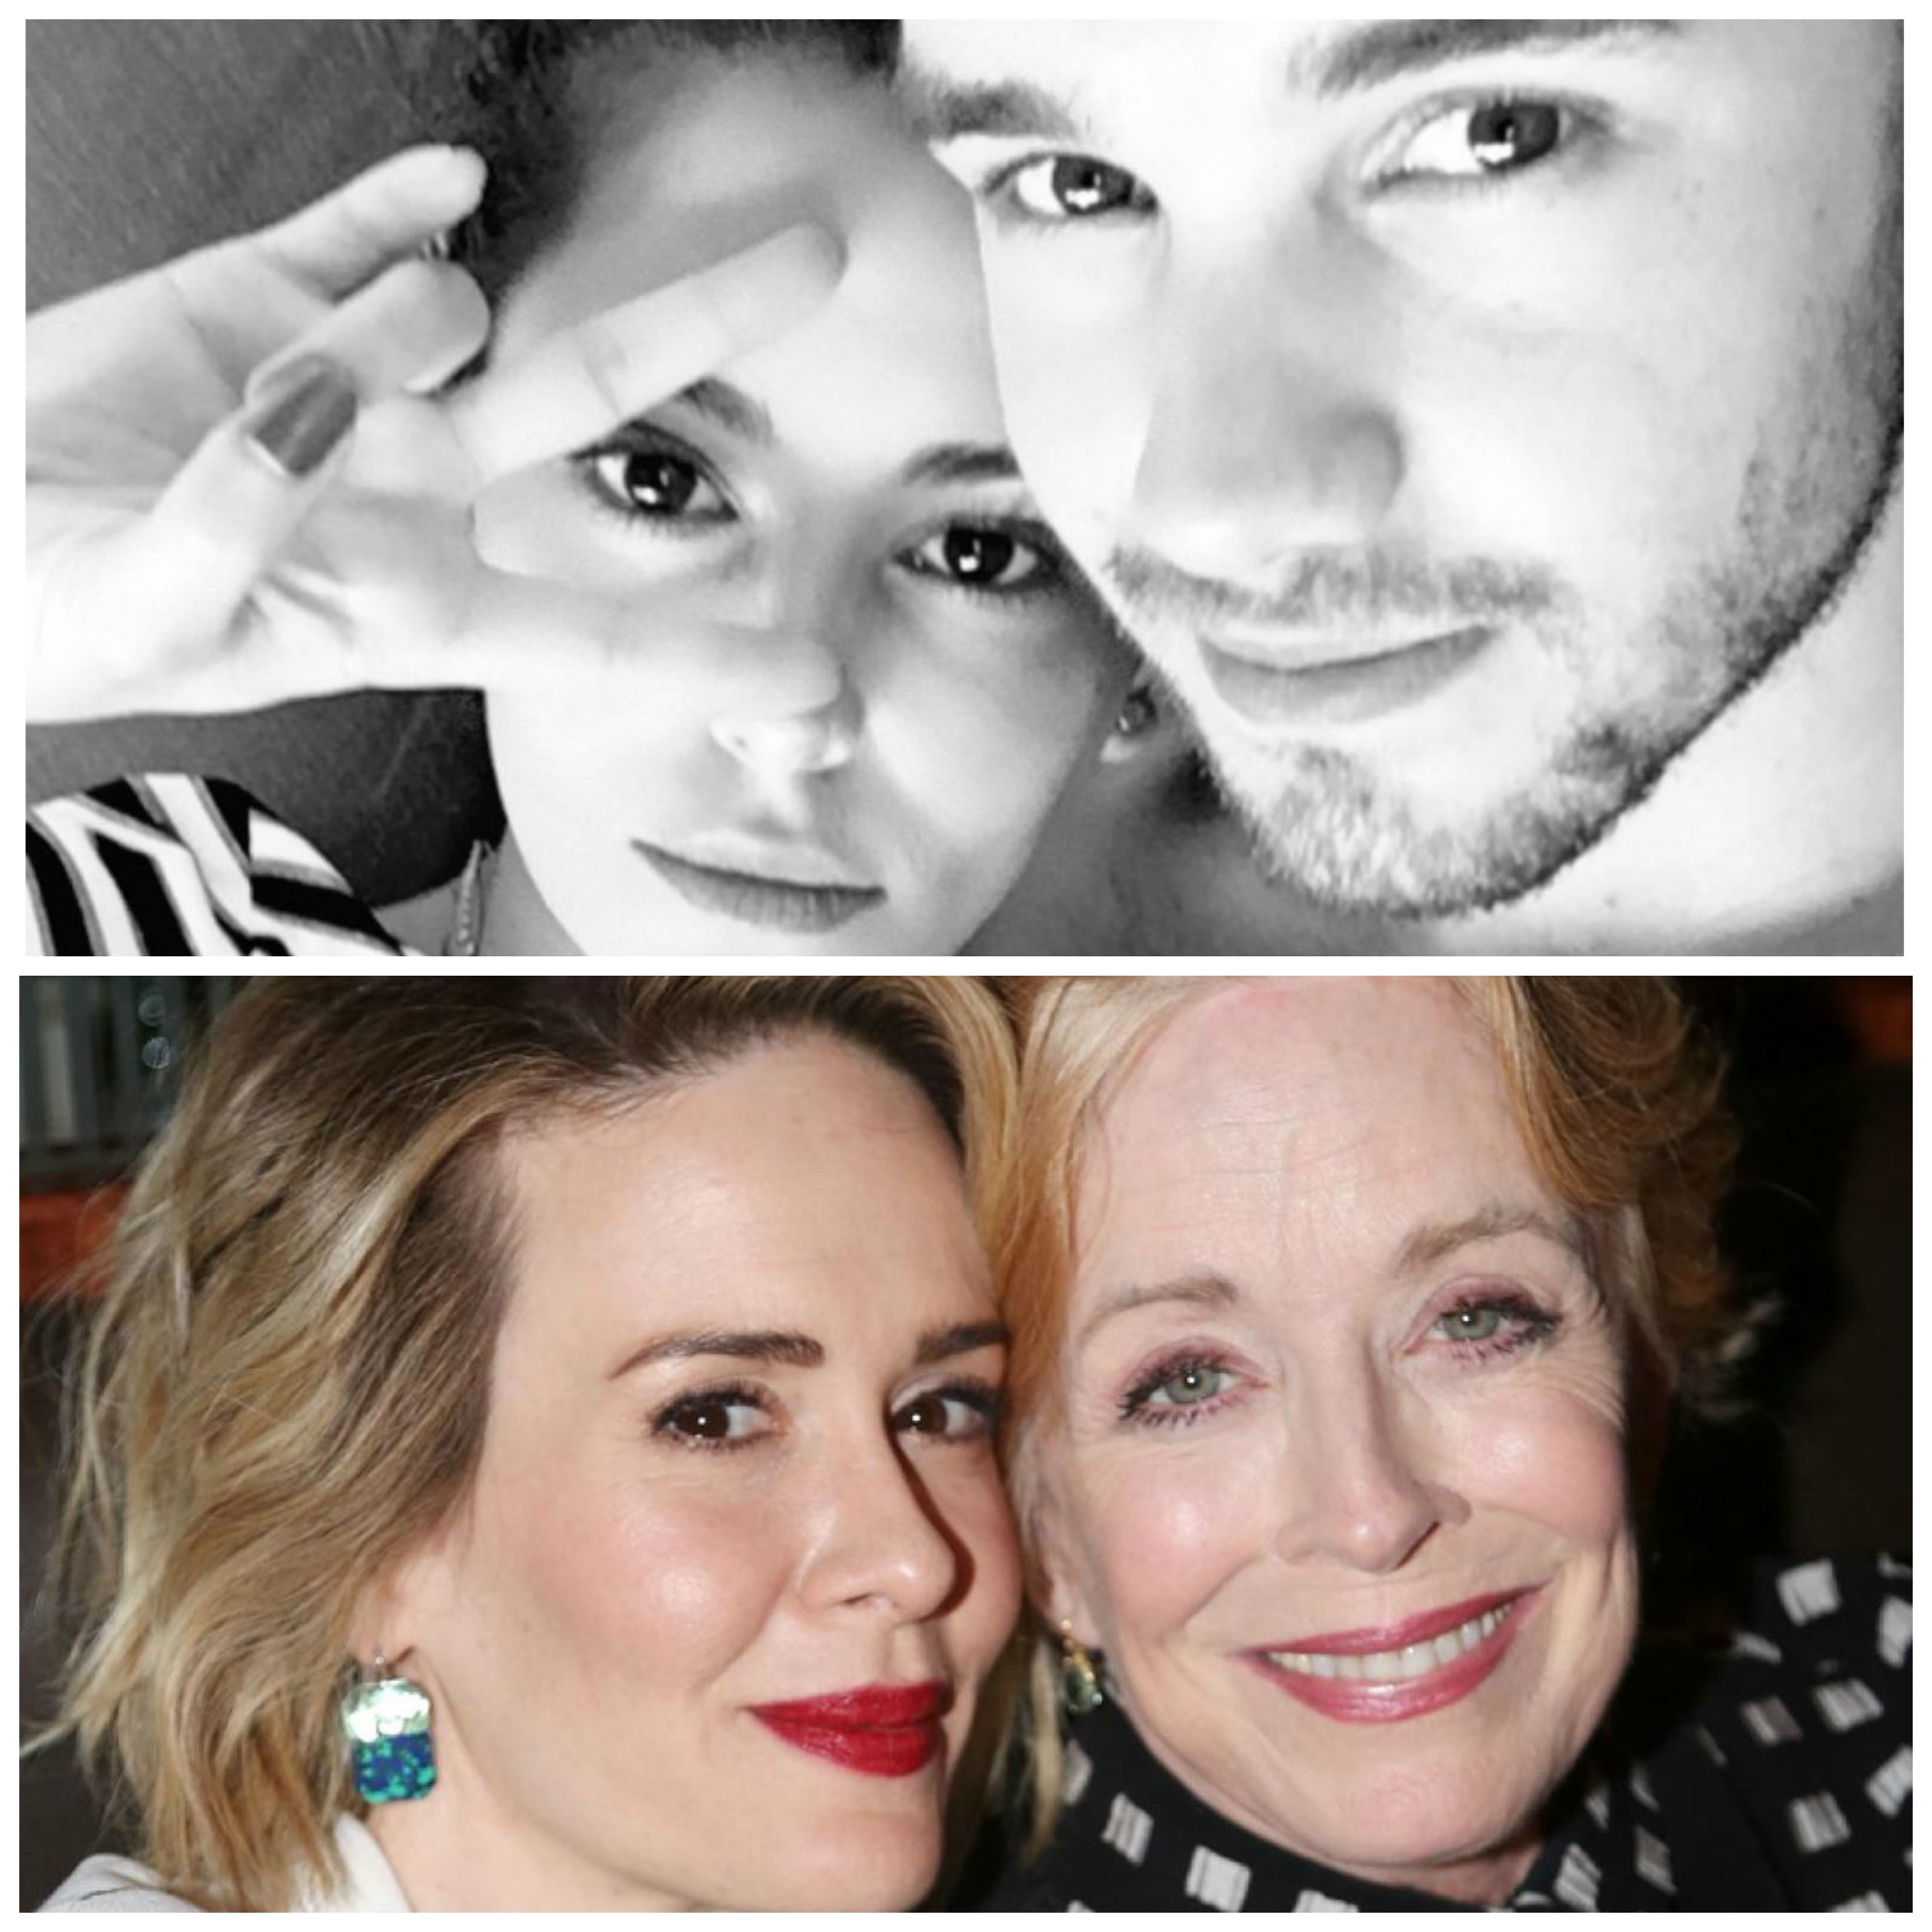 COUPLES ALERT: Liam Payne, Sarah Paulson Show Off New Loves!